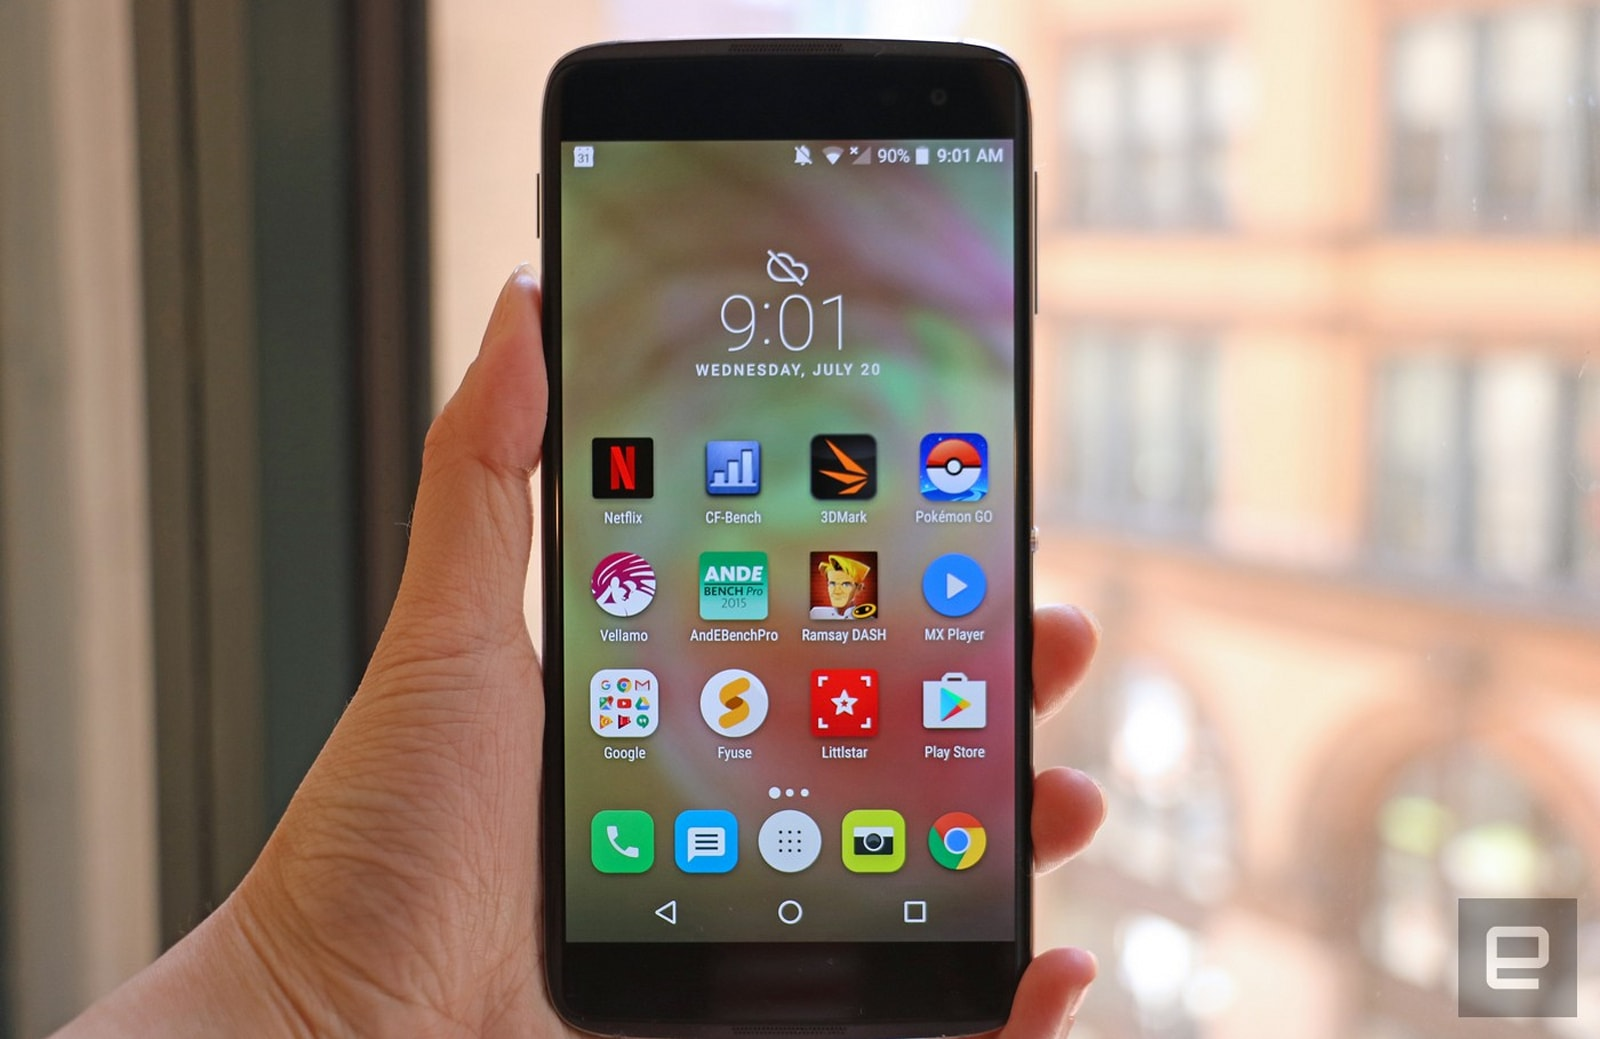 Alcatel's Idol 4S bundle is an affordable way to try out VR